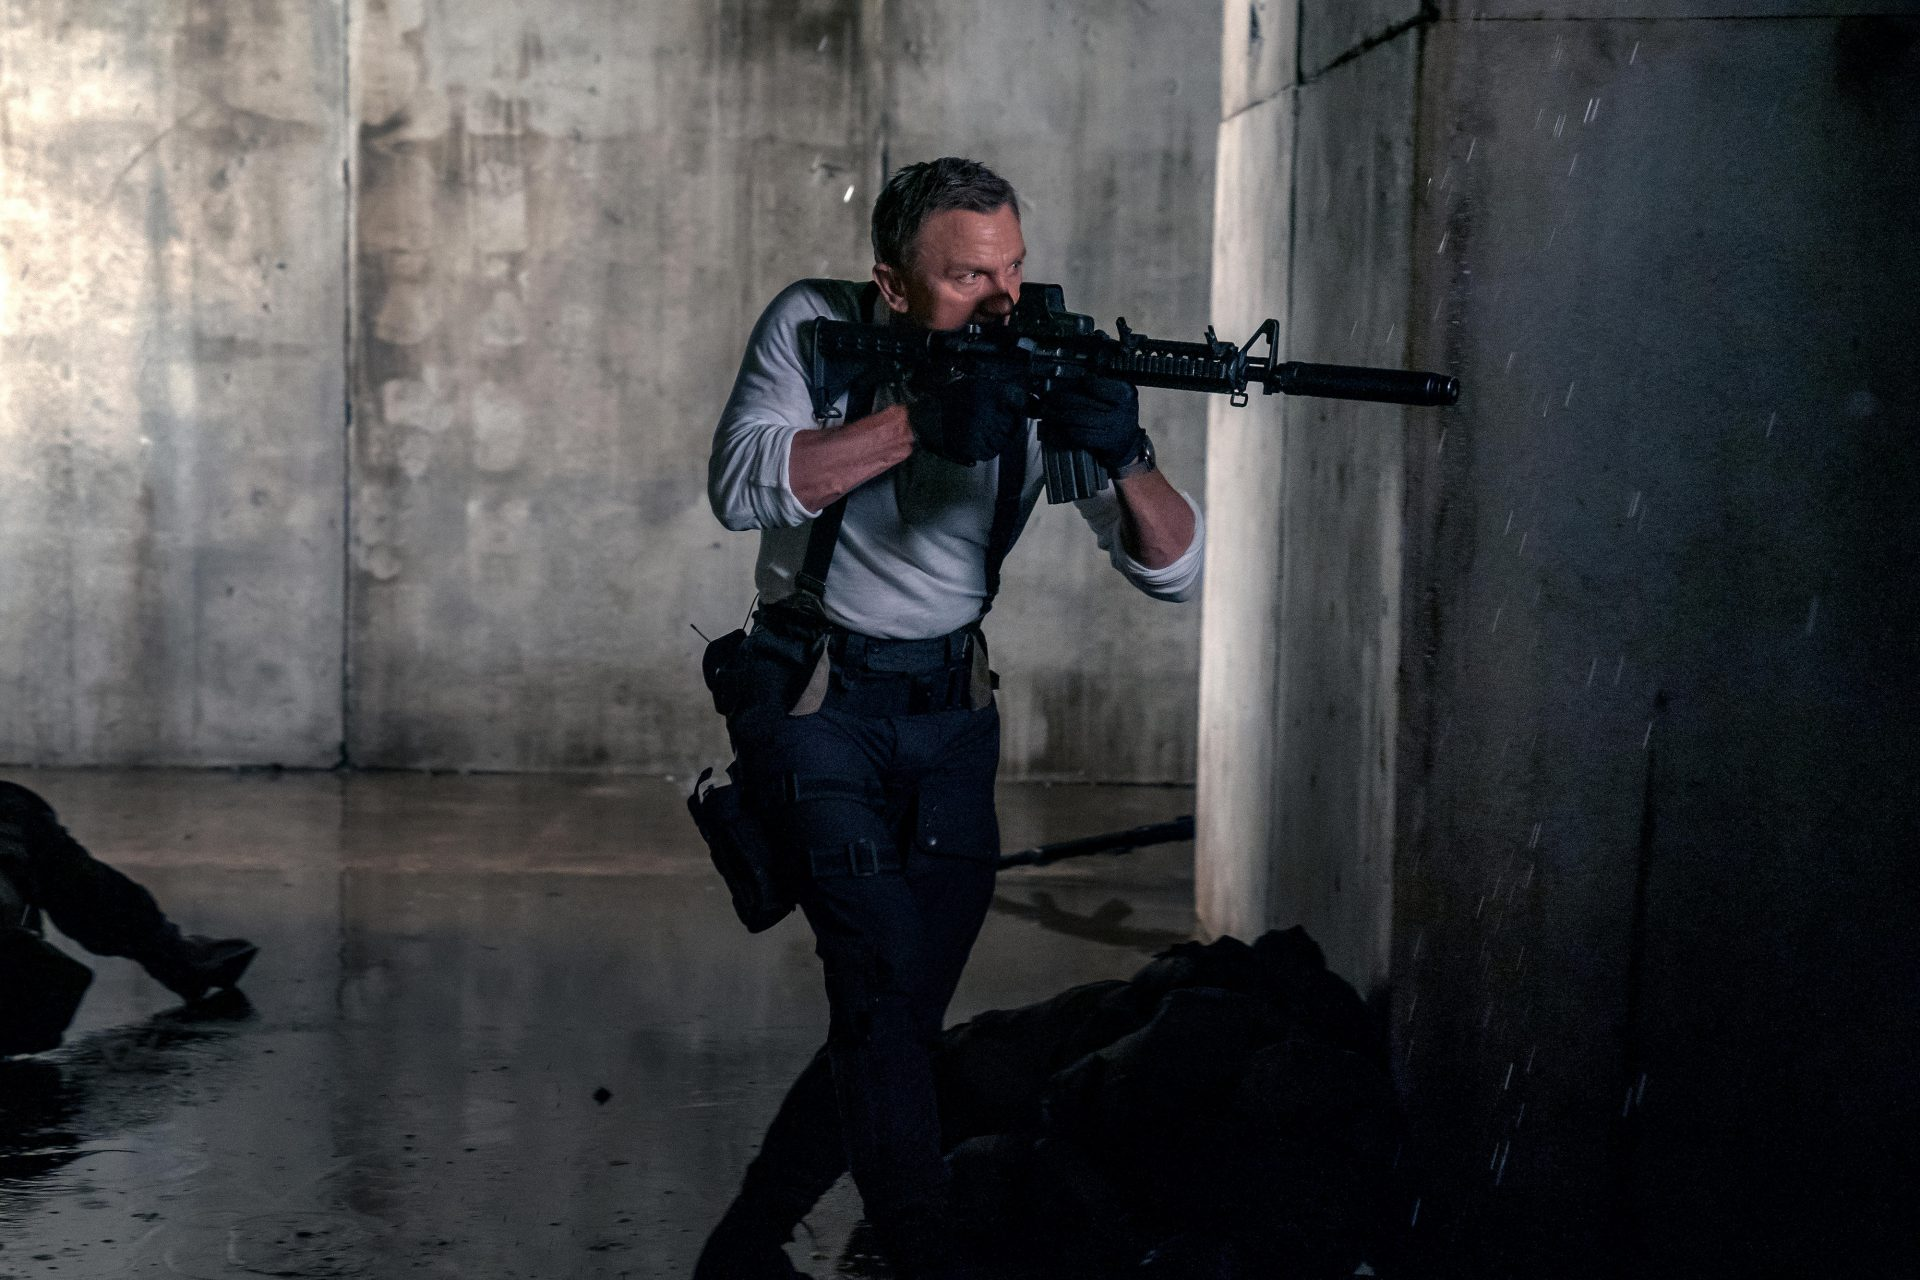 Craig in a scene from new Bond film No Time To Die. Credit: Nicola Dove, Danjaq, LLC and MGM